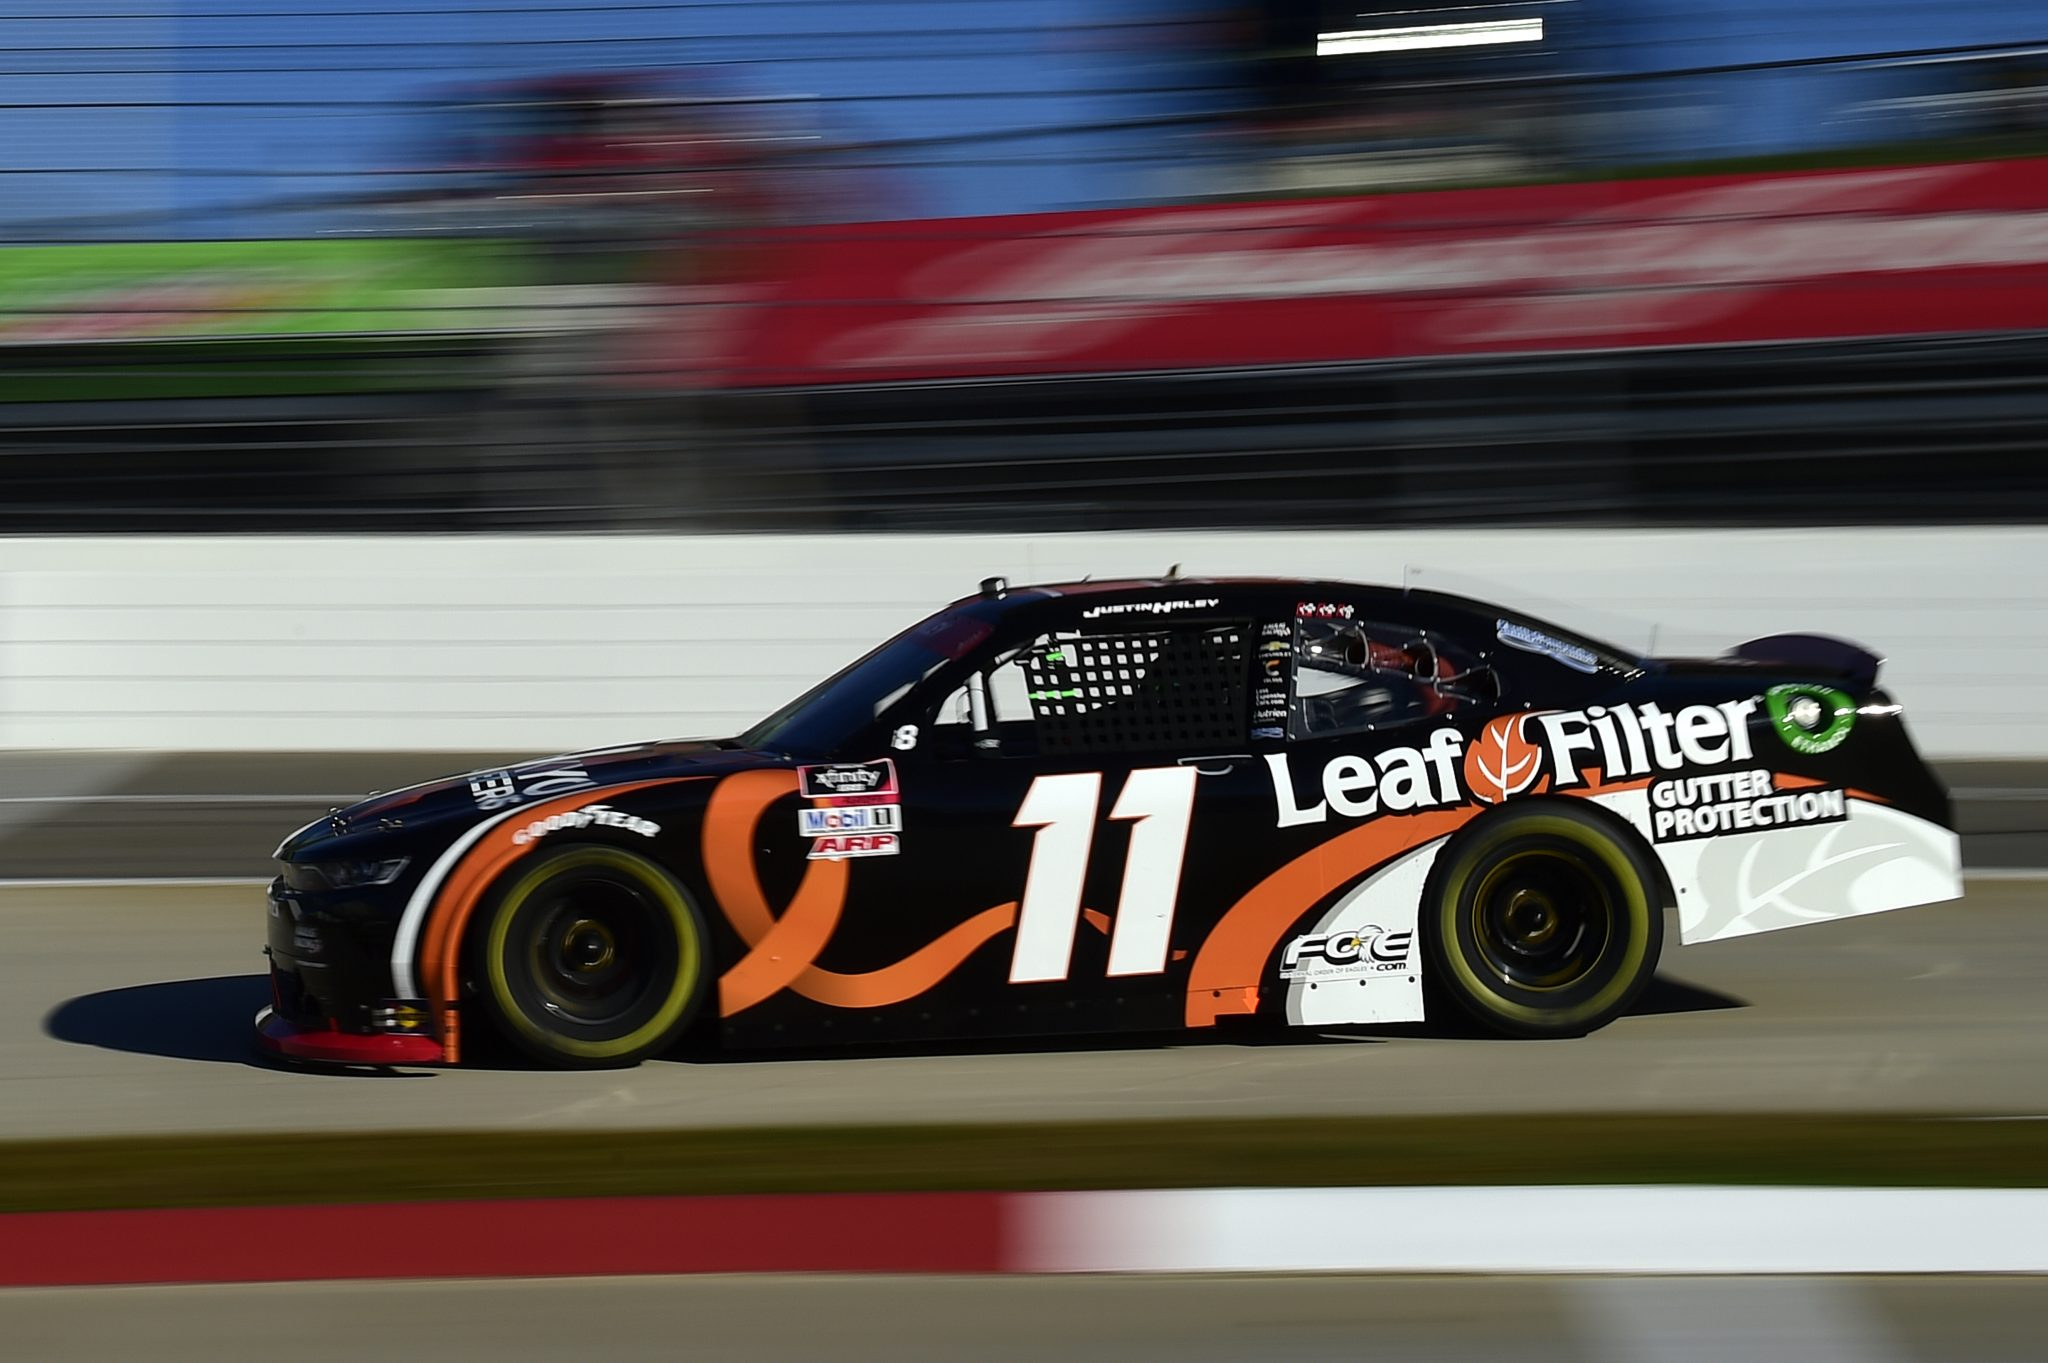 MARTINSVILLE, VIRGINIA - OCTOBER 31: Justin Haley, driver of the #11 LeafFilter Gutter Protection Chevrolet, drives during the NASCAR Xfinity Series Draft Top 250 at Martinsville Speedway on October 31, 2020 in Martinsville, Virginia. (Photo by Jared C. Tilton/Getty Images) | Getty Images